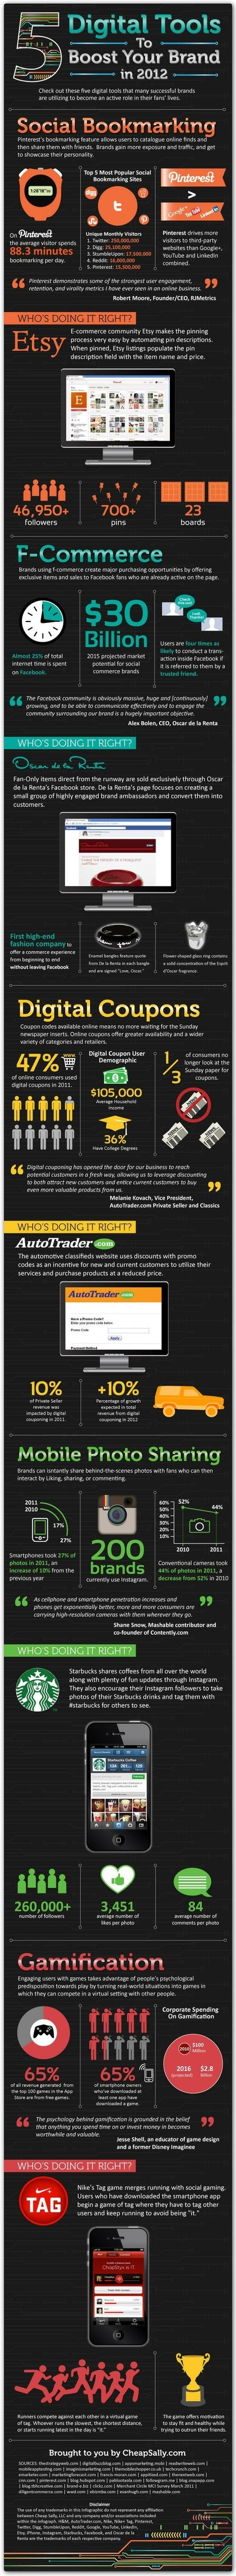 Best 5 Digital Tools to Increase Online Business Branding | All Infographics | Real Tech News | Scoop.it